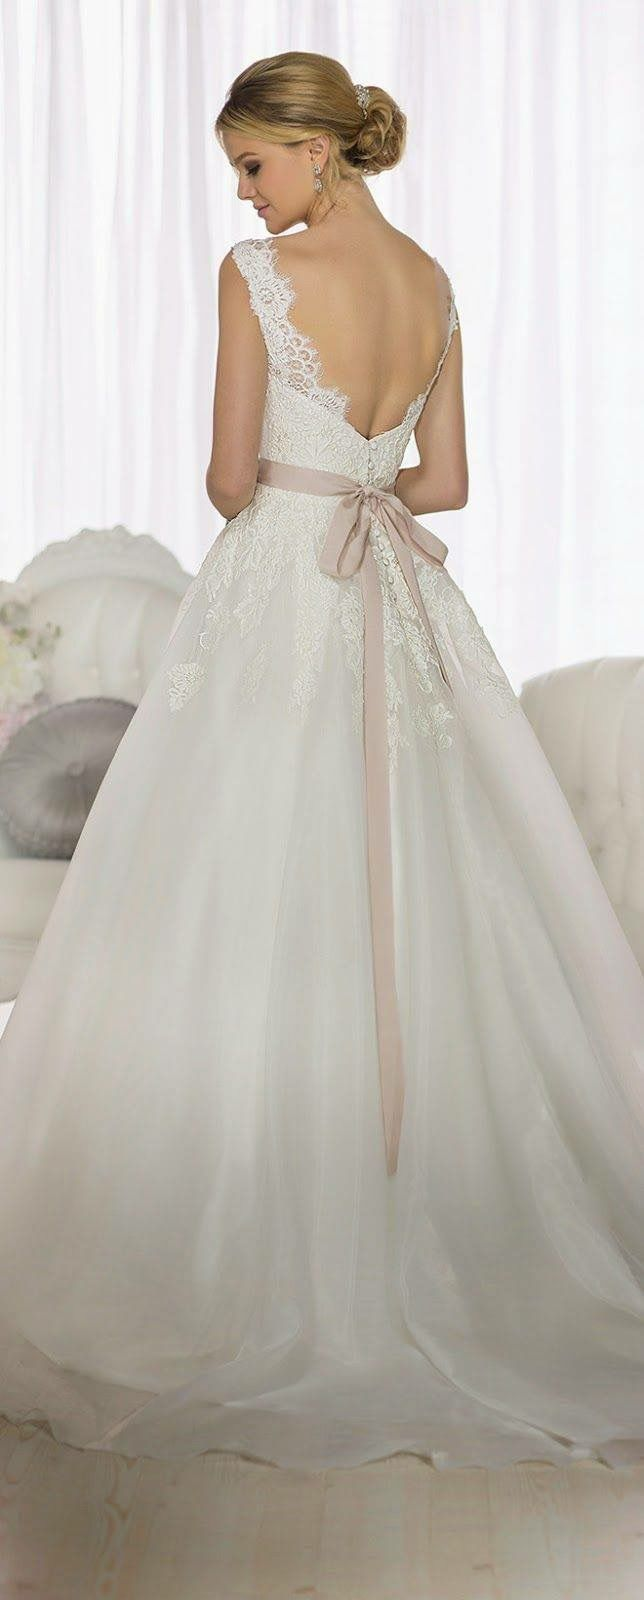 I need a dress for a spring wedding  Pin by Moriah Hooper on my dream fairytale uc uc  Pinterest